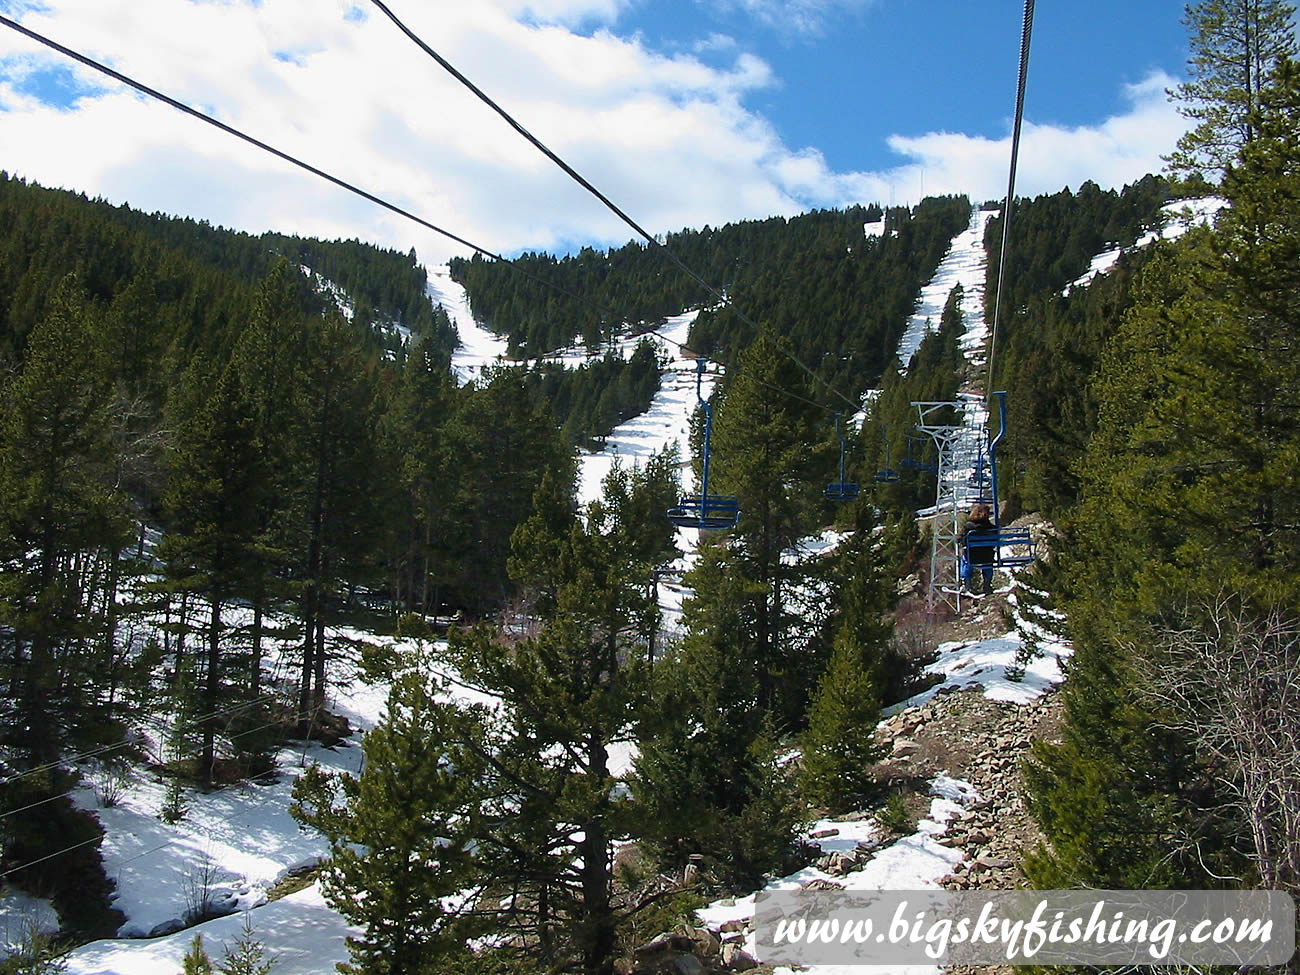 Riding Wild West Chair Lift at Great Divide Ski Area